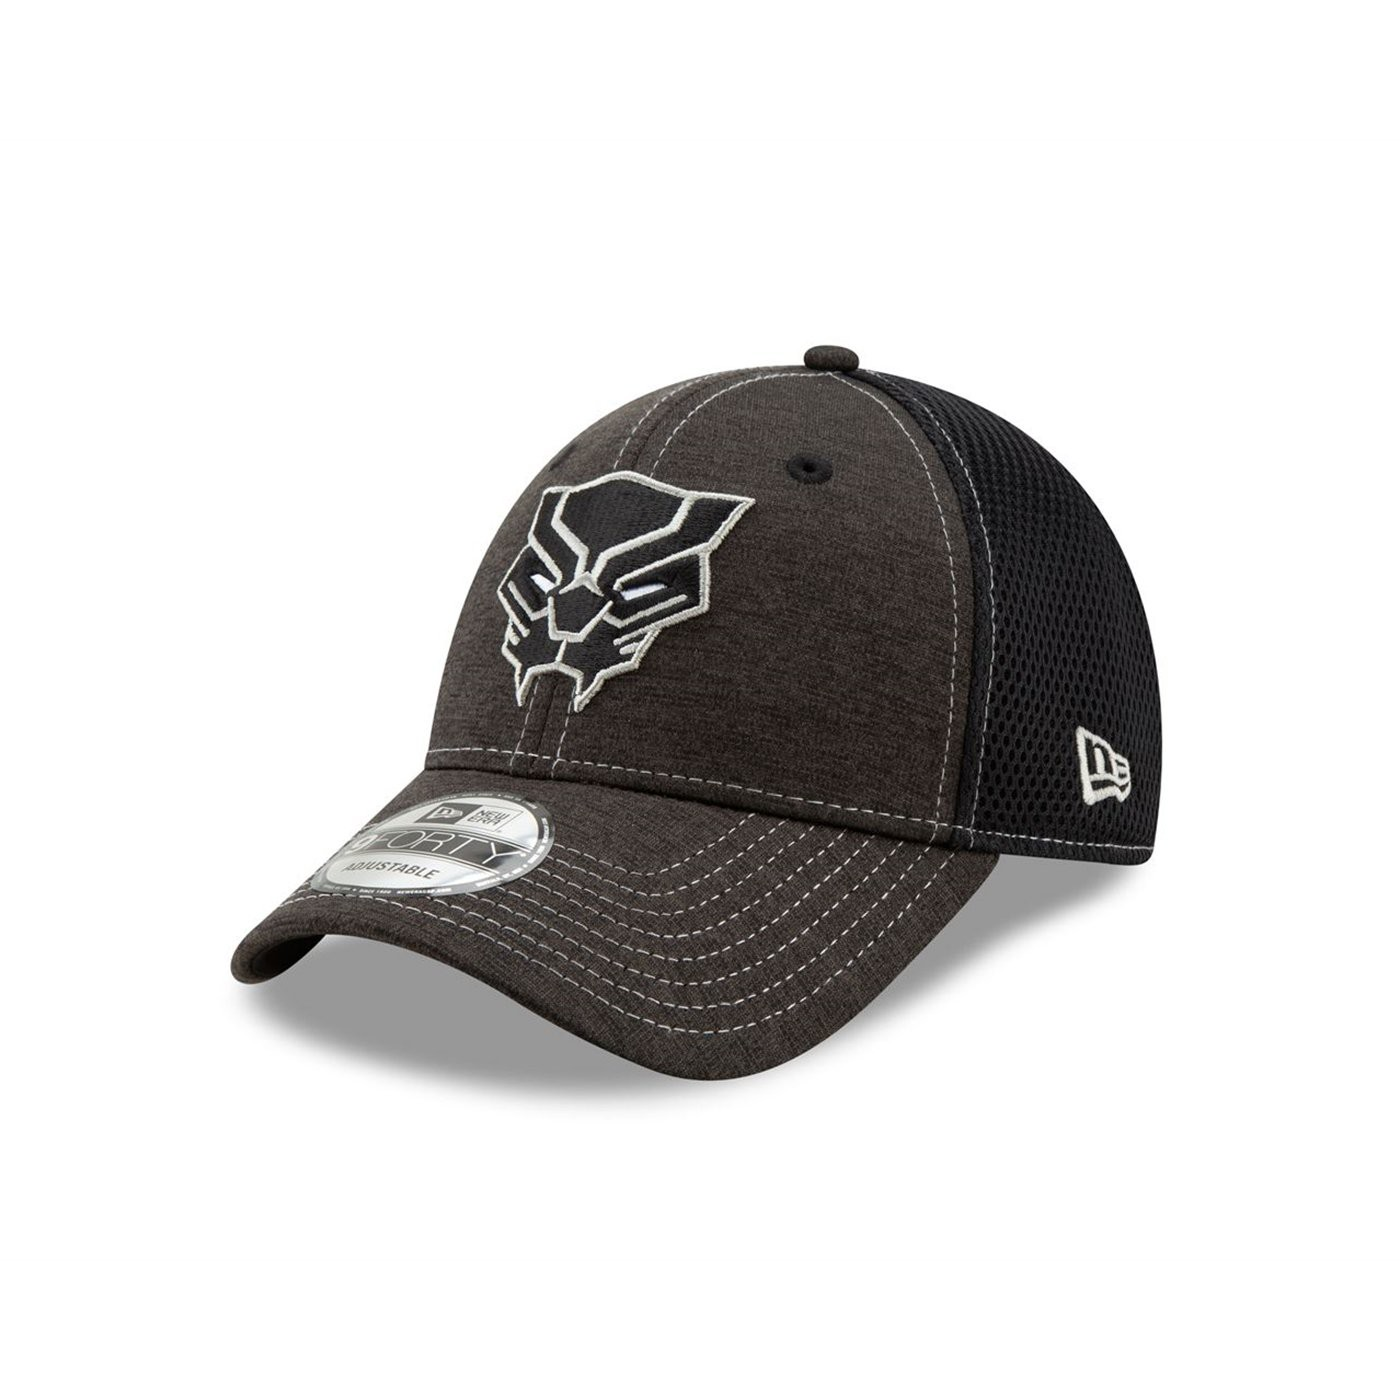 Black Panther Logo Dark Grey New Era 9Forty Adjustable Hat